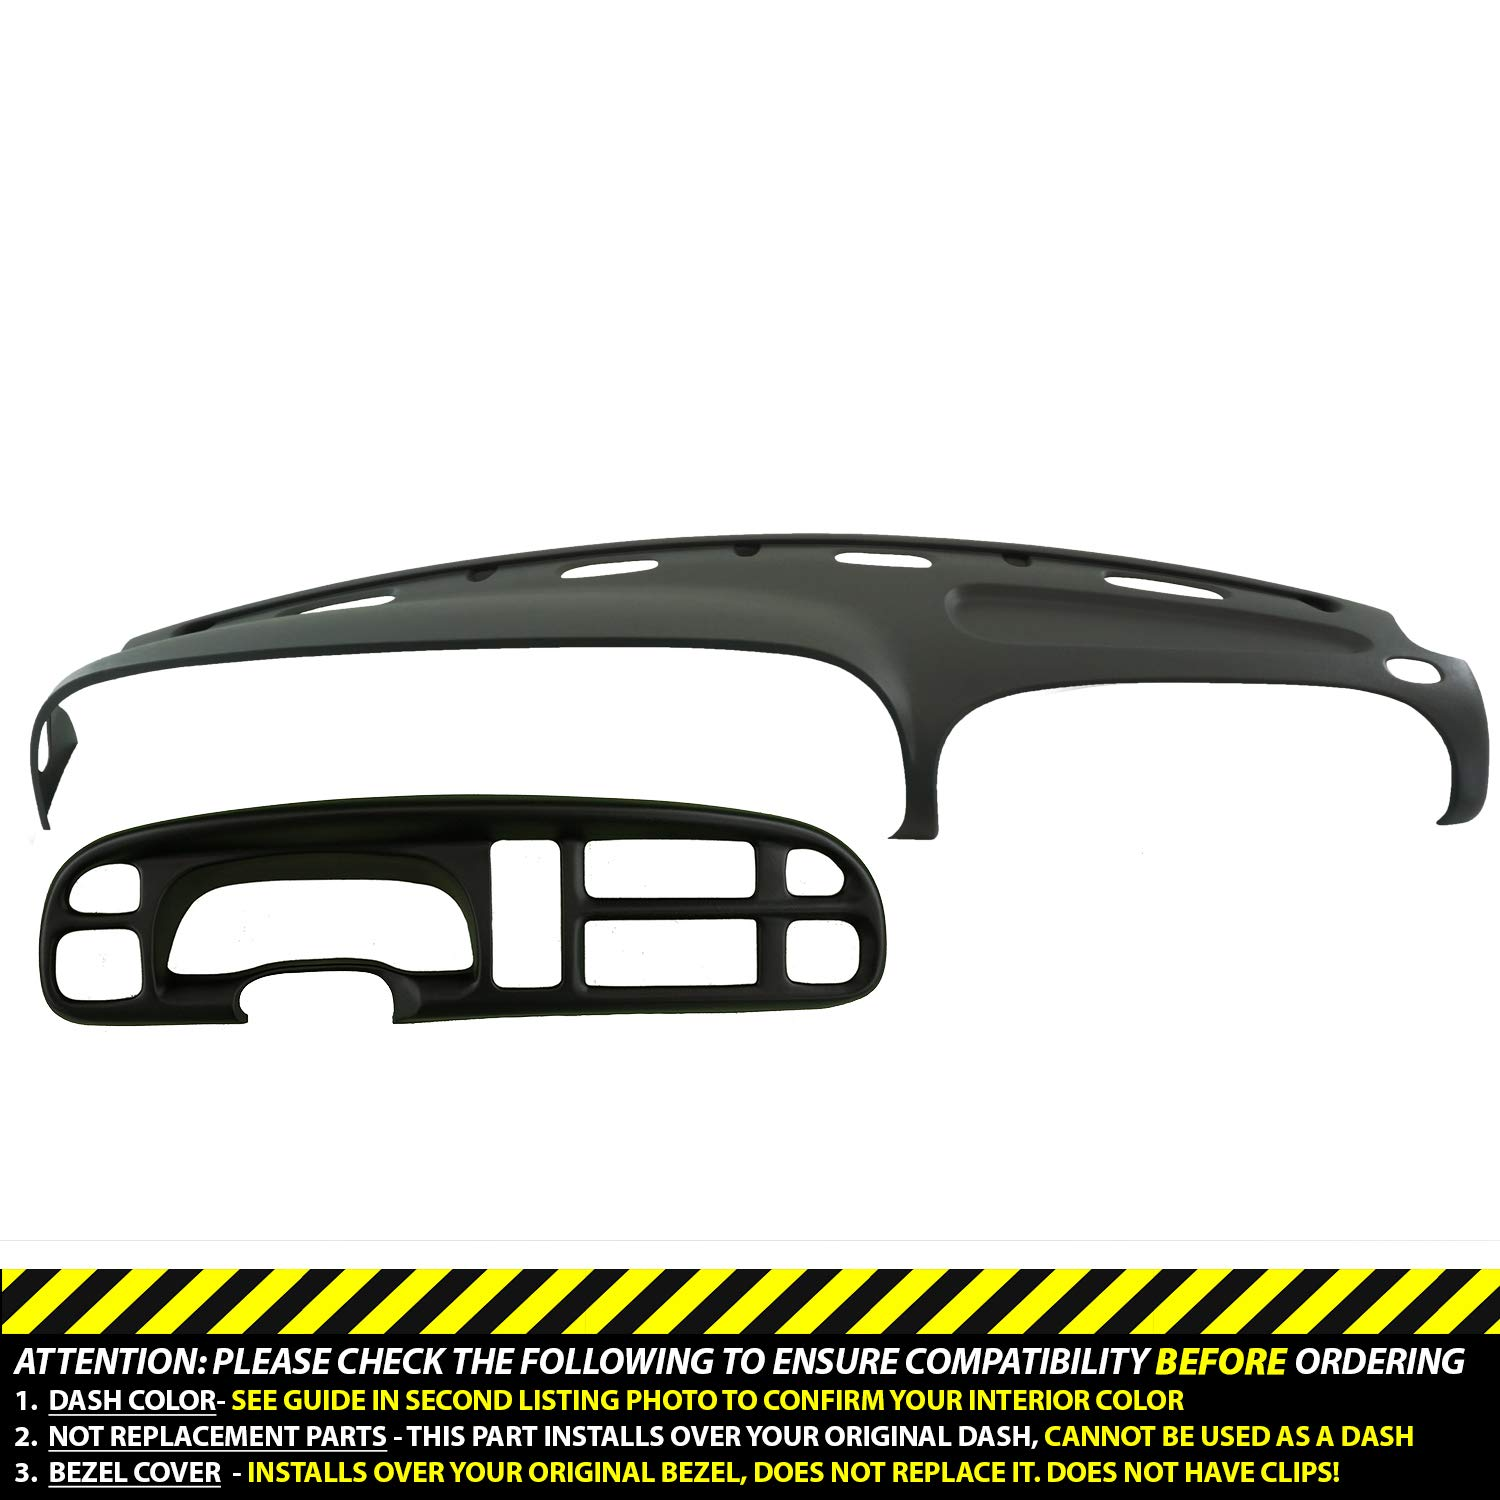 DashSkin Molded Dash & Bezel Cover Kit Compatible with 99-01 Dodge Ram in Agate (Dark Grey)